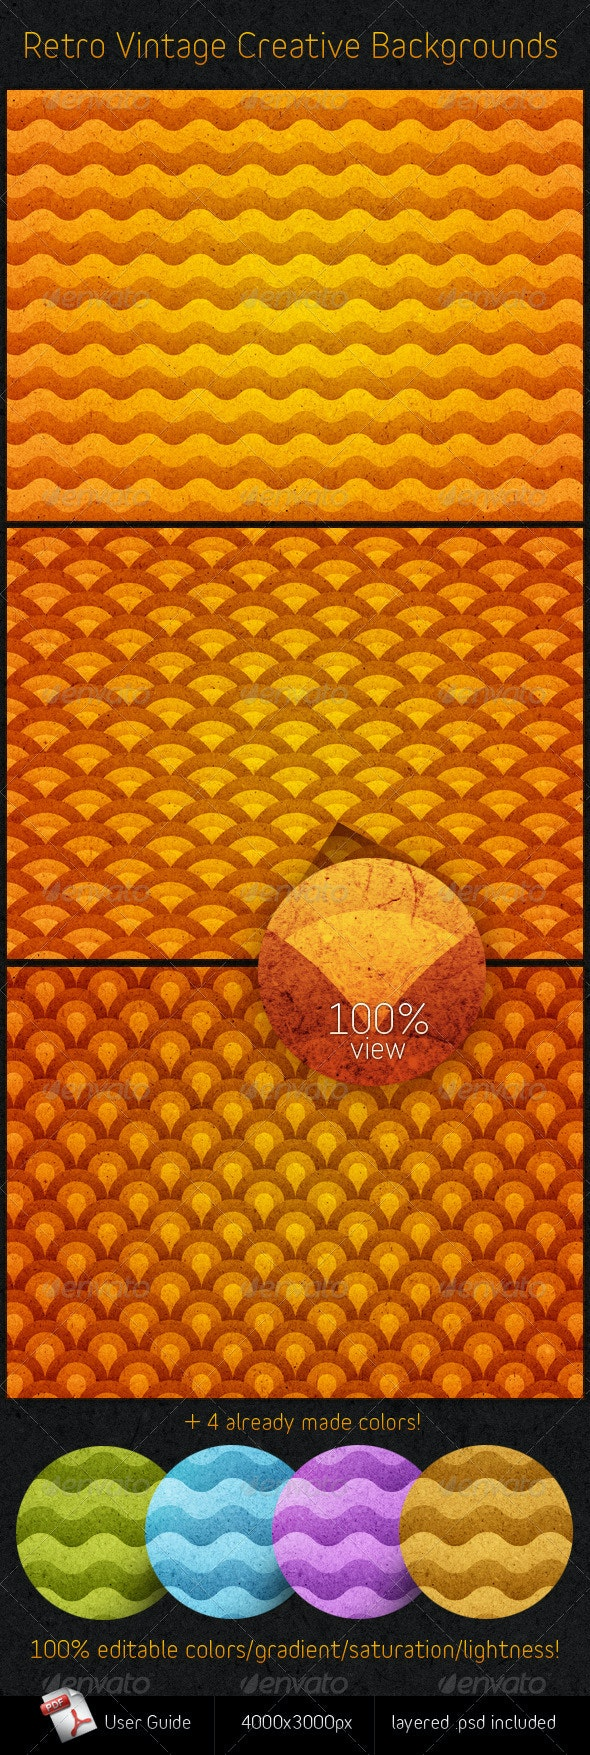 Retro Vintage Creative Backgrounds - Miscellaneous Textures